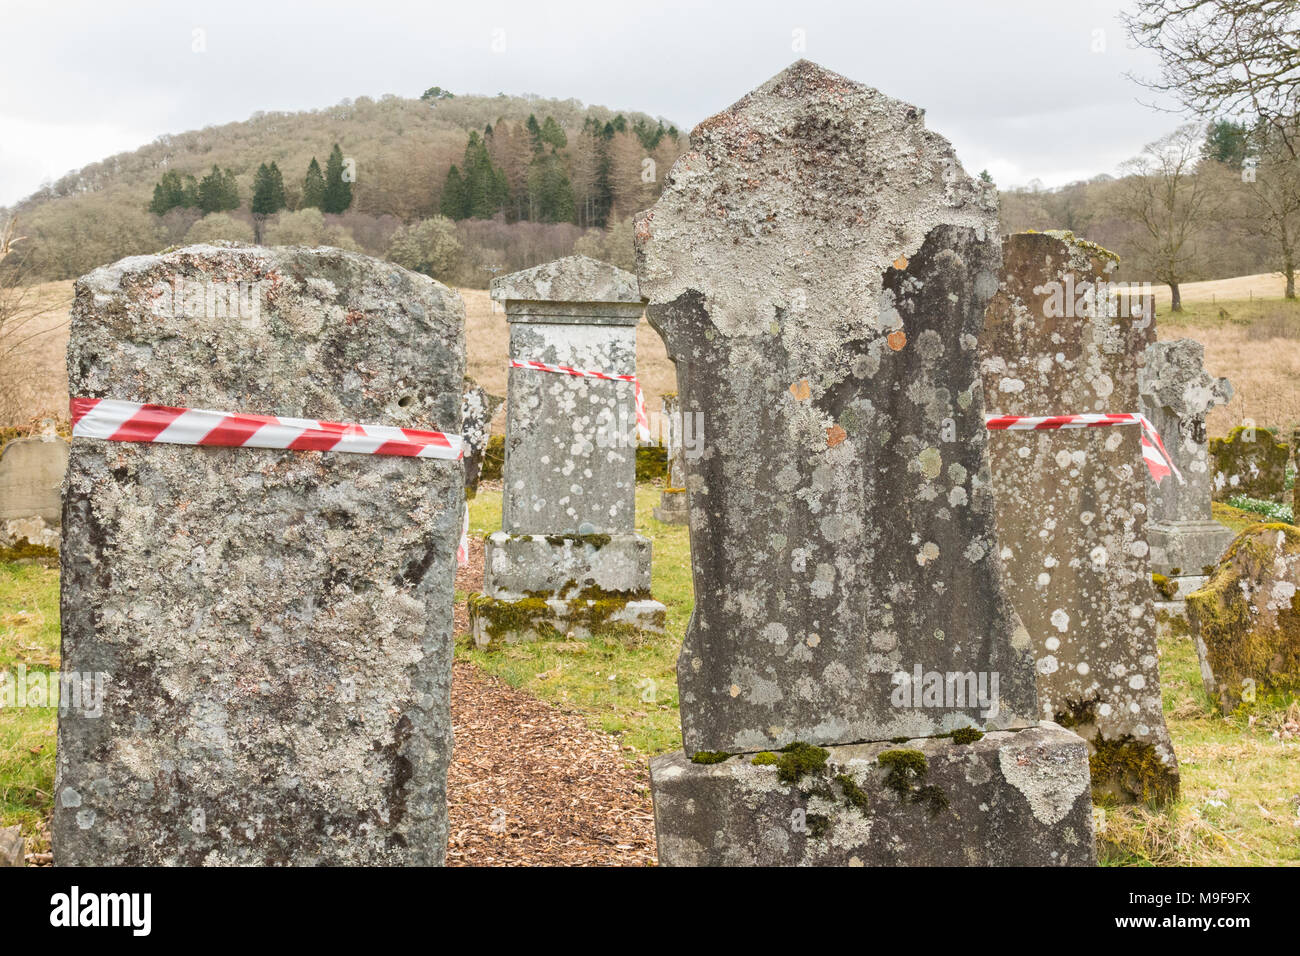 memorial safety - red and white hazard warning tape wrapped around headstones in Aberfoyle Old Parish Churchyard, Scotland, UK - Stock Image